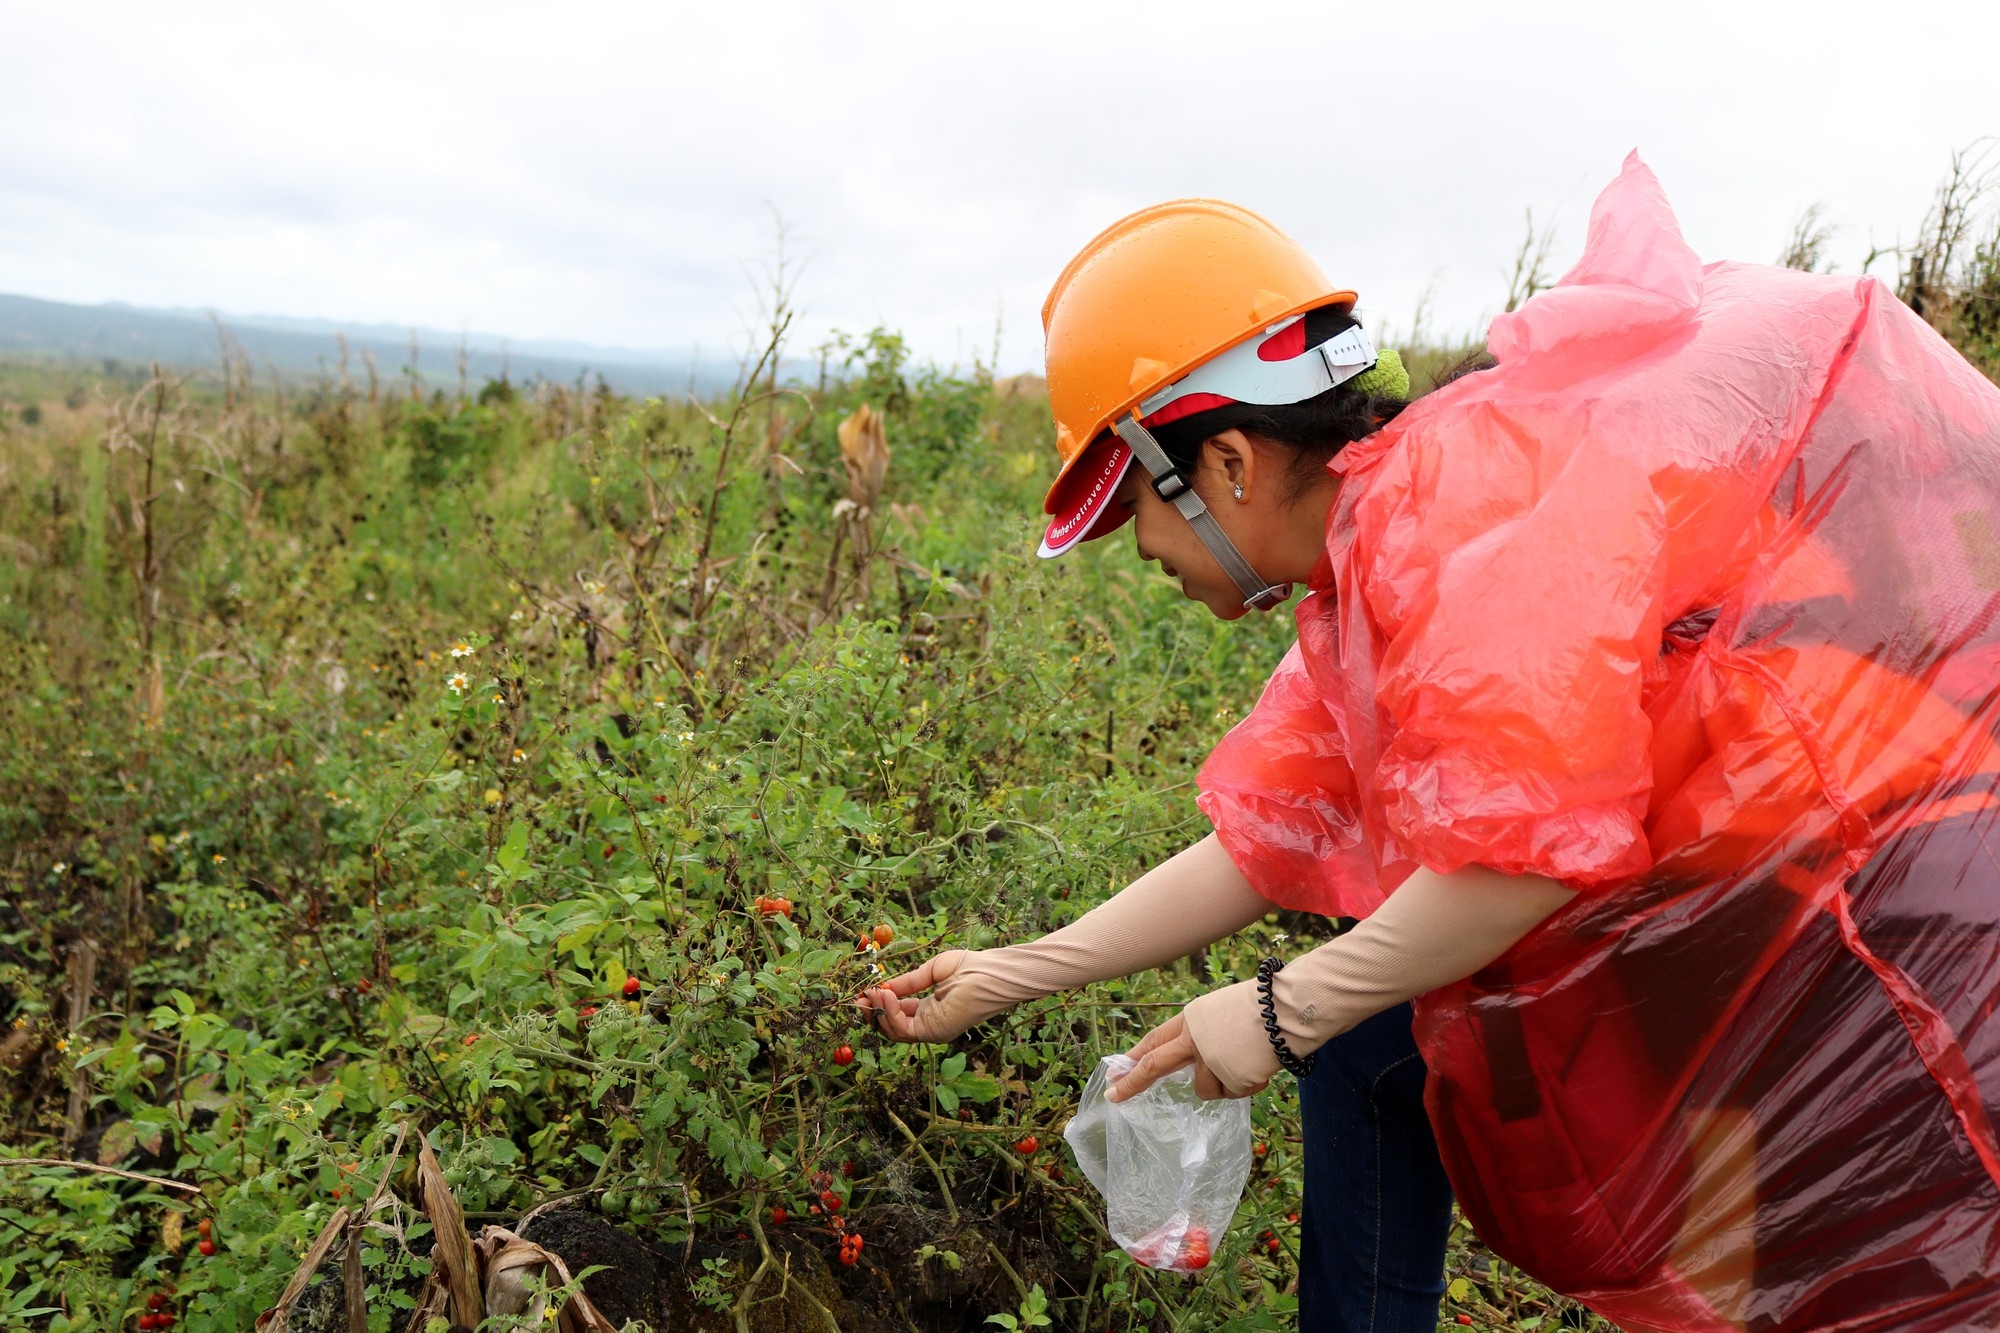 A woman picks wild fruits on the way to the Chu B'luk (Genesis) volcano in Dak Nong Province, Vietnam's Central Highlands. Photo: Tuoi Tre